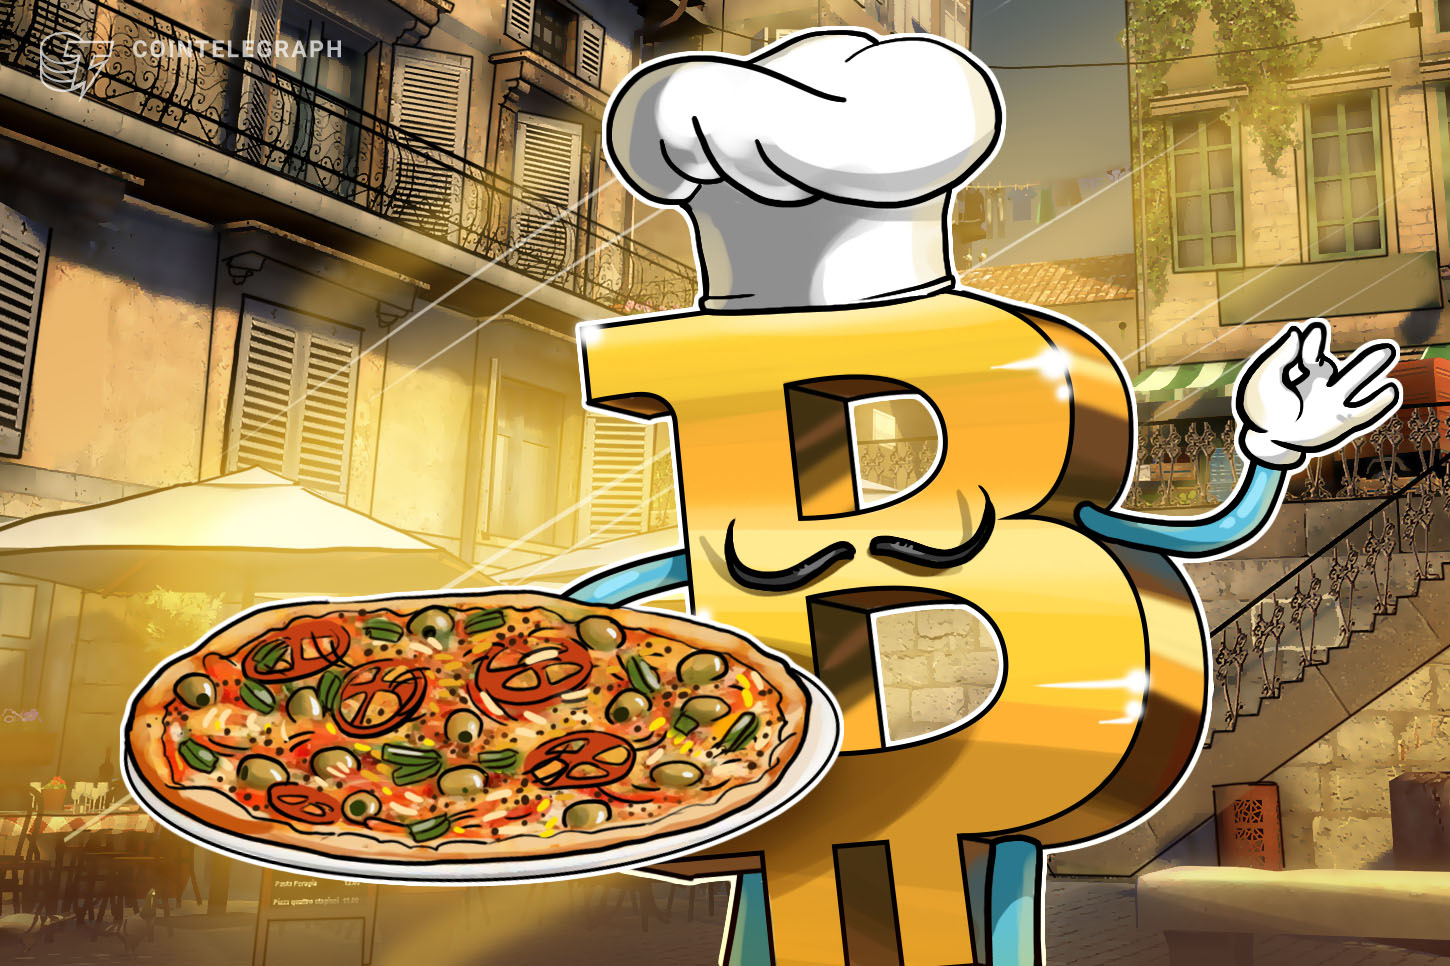 Bitcoin bull launches pizza company that doesn't accept crypto payments